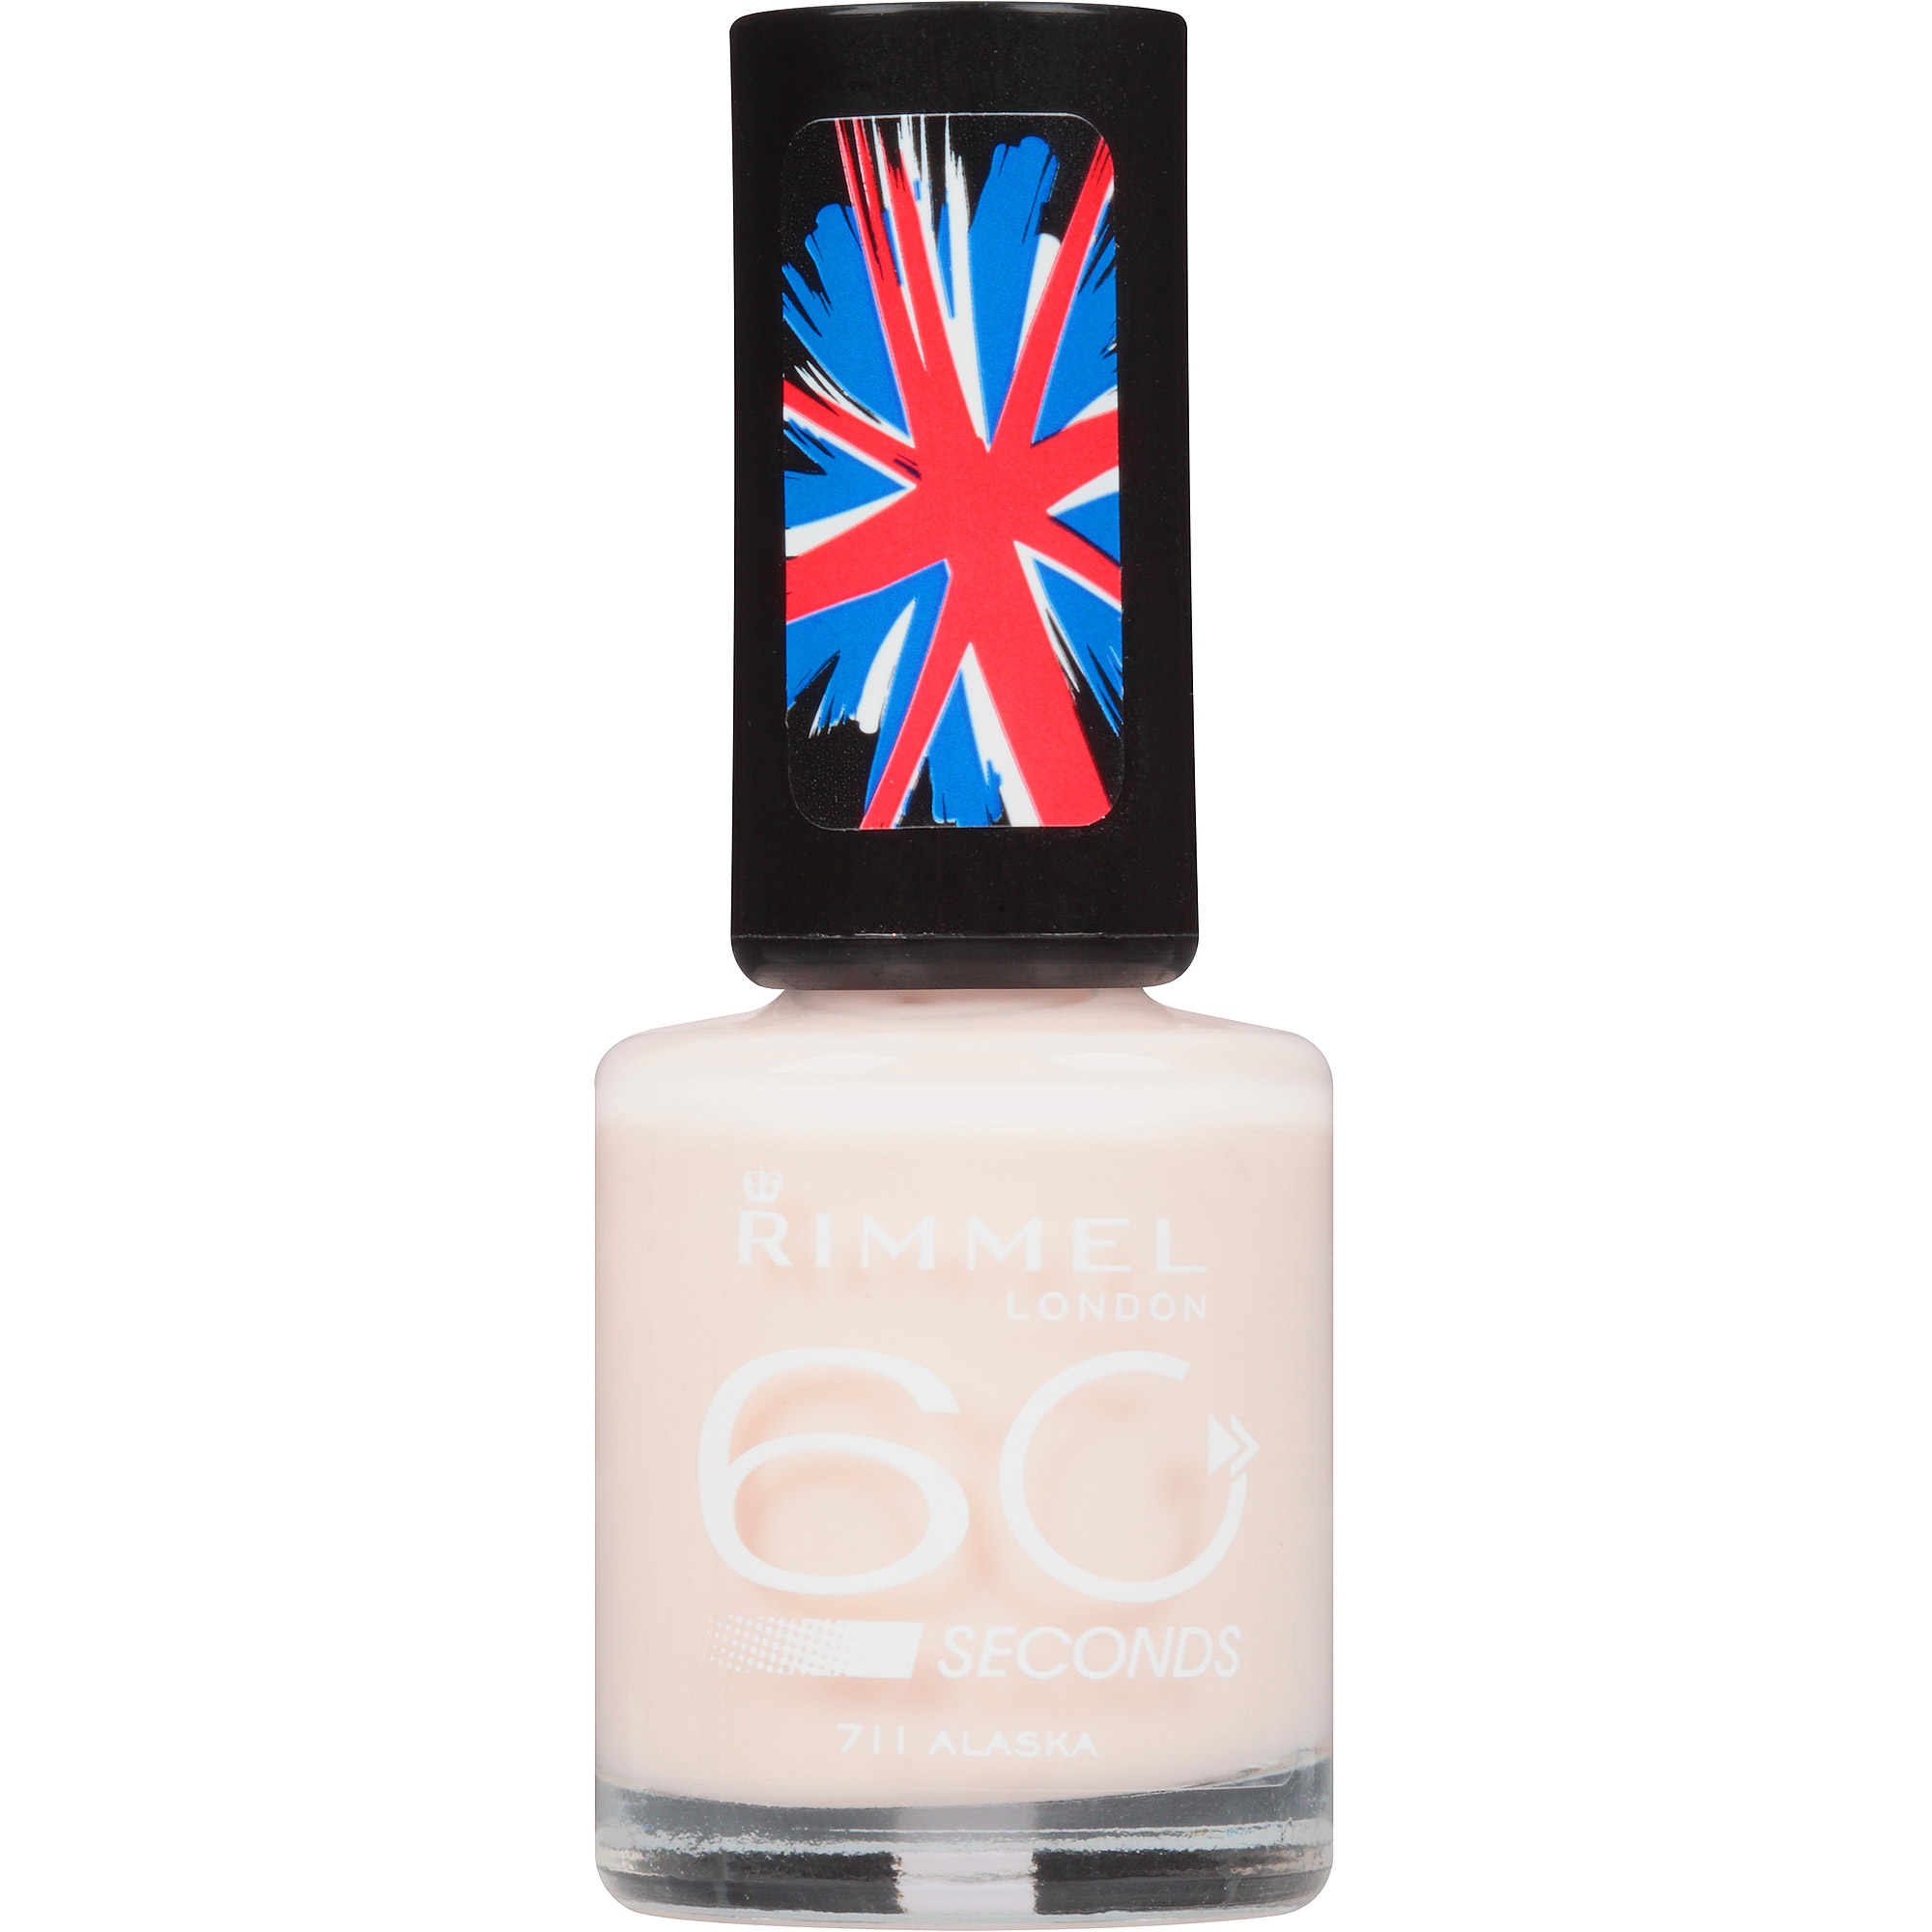 Rimmel London 60 Seconds Nail Polish, 711 Alaska, 0.27 fl oz - Walmart.com